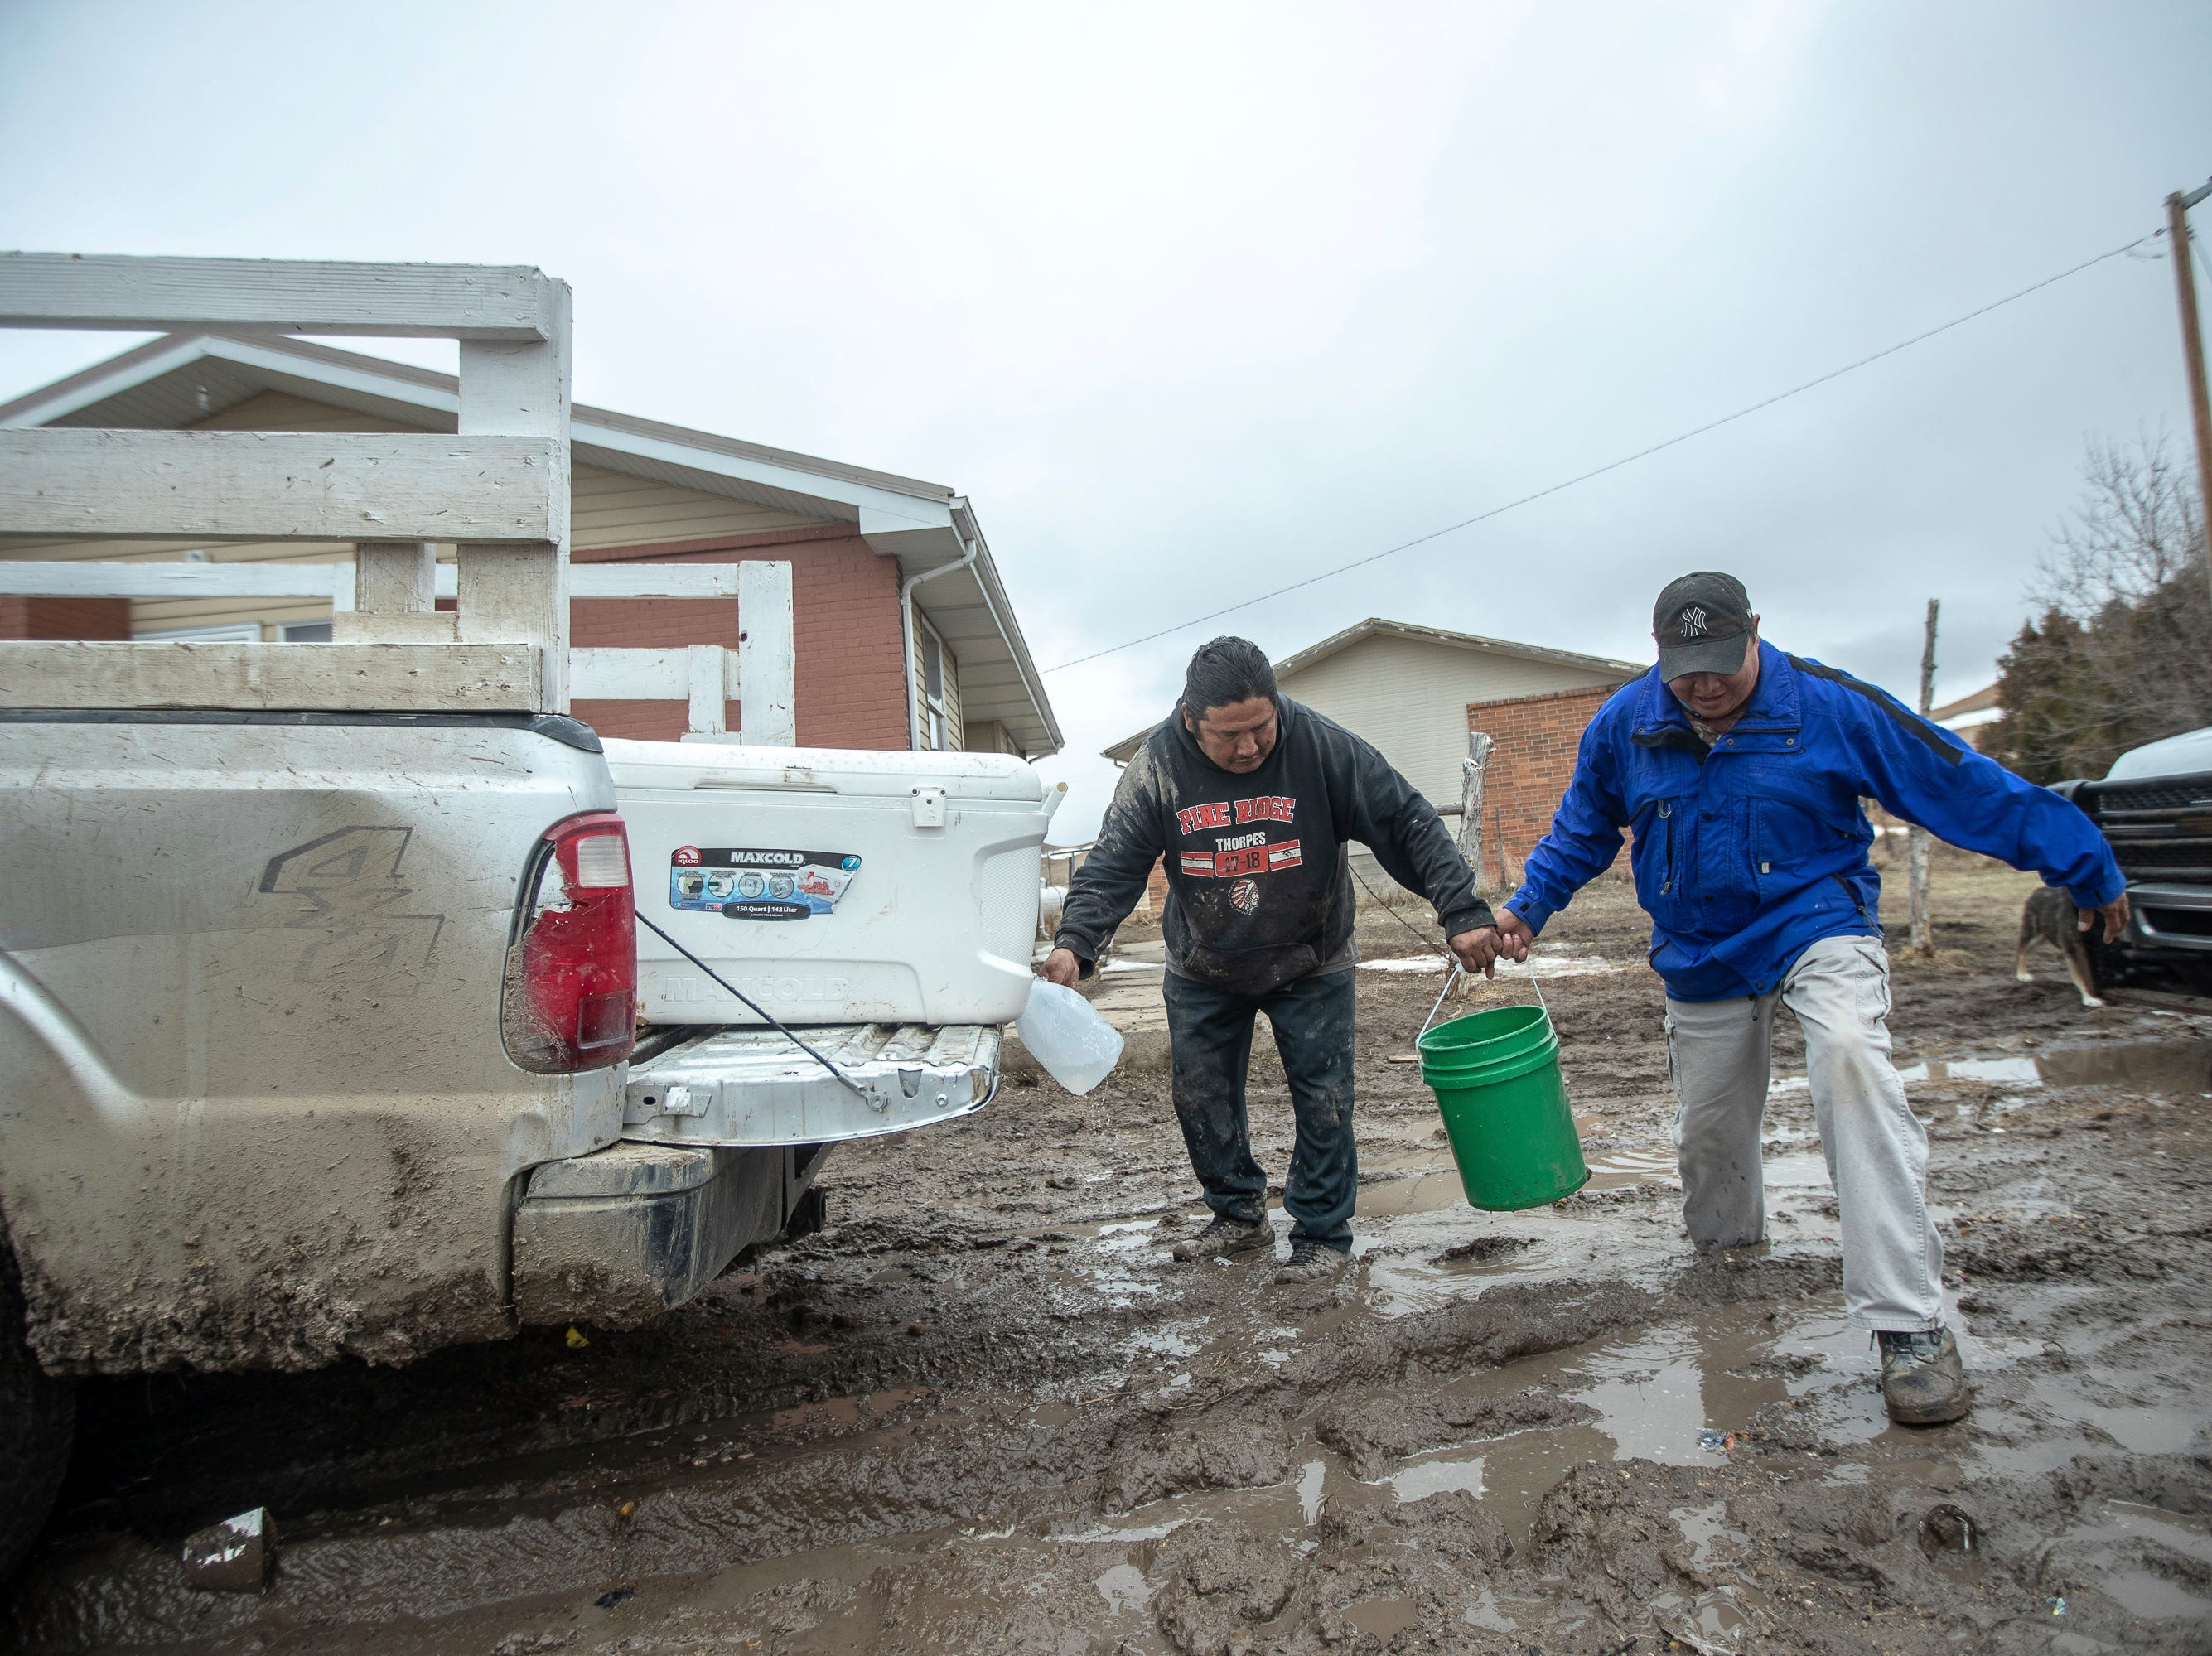 In this Monday, March 25, 2019 photo, tribal employees bring water, to elders and others who were stranded in their homes on the Pine Ridge Indian Reservation  near Porcupine, S.D., following spring flooding.